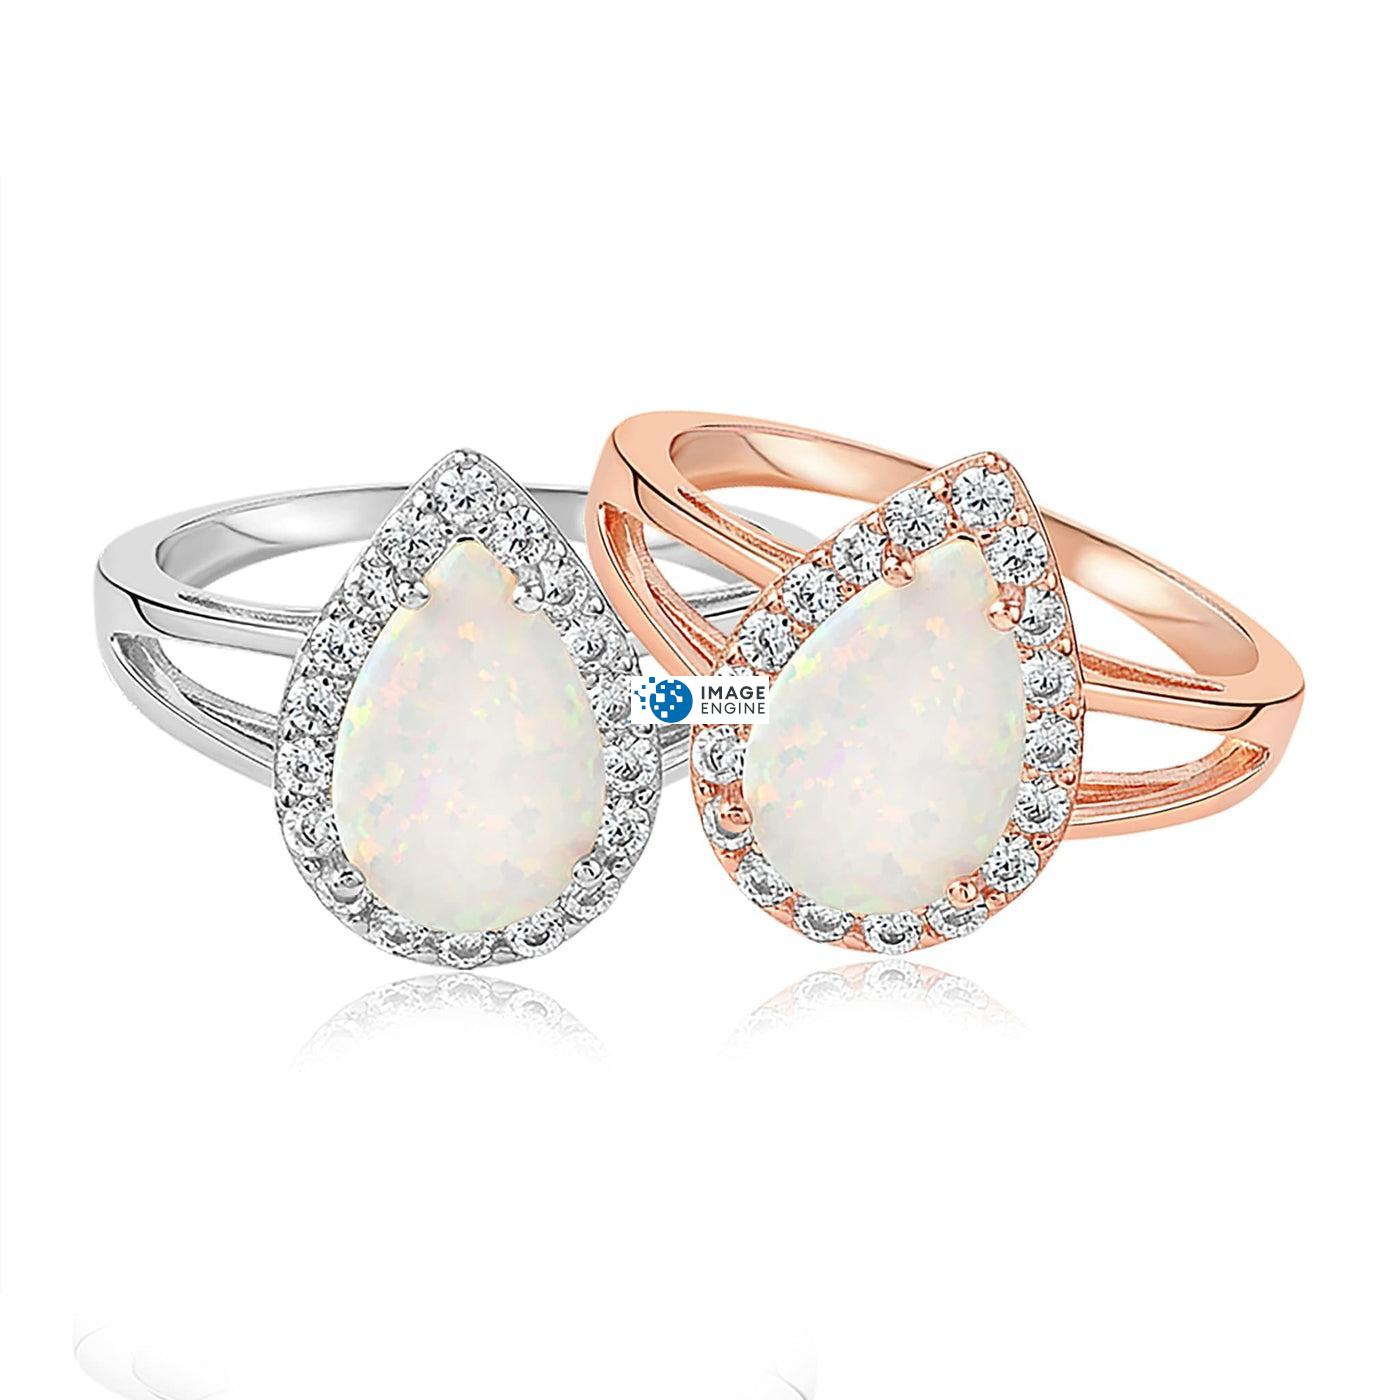 White Fire Champagne Opal Ring - Front View Side by Side - 18K Rose Gold Vermeil and 925 Sterling Silver